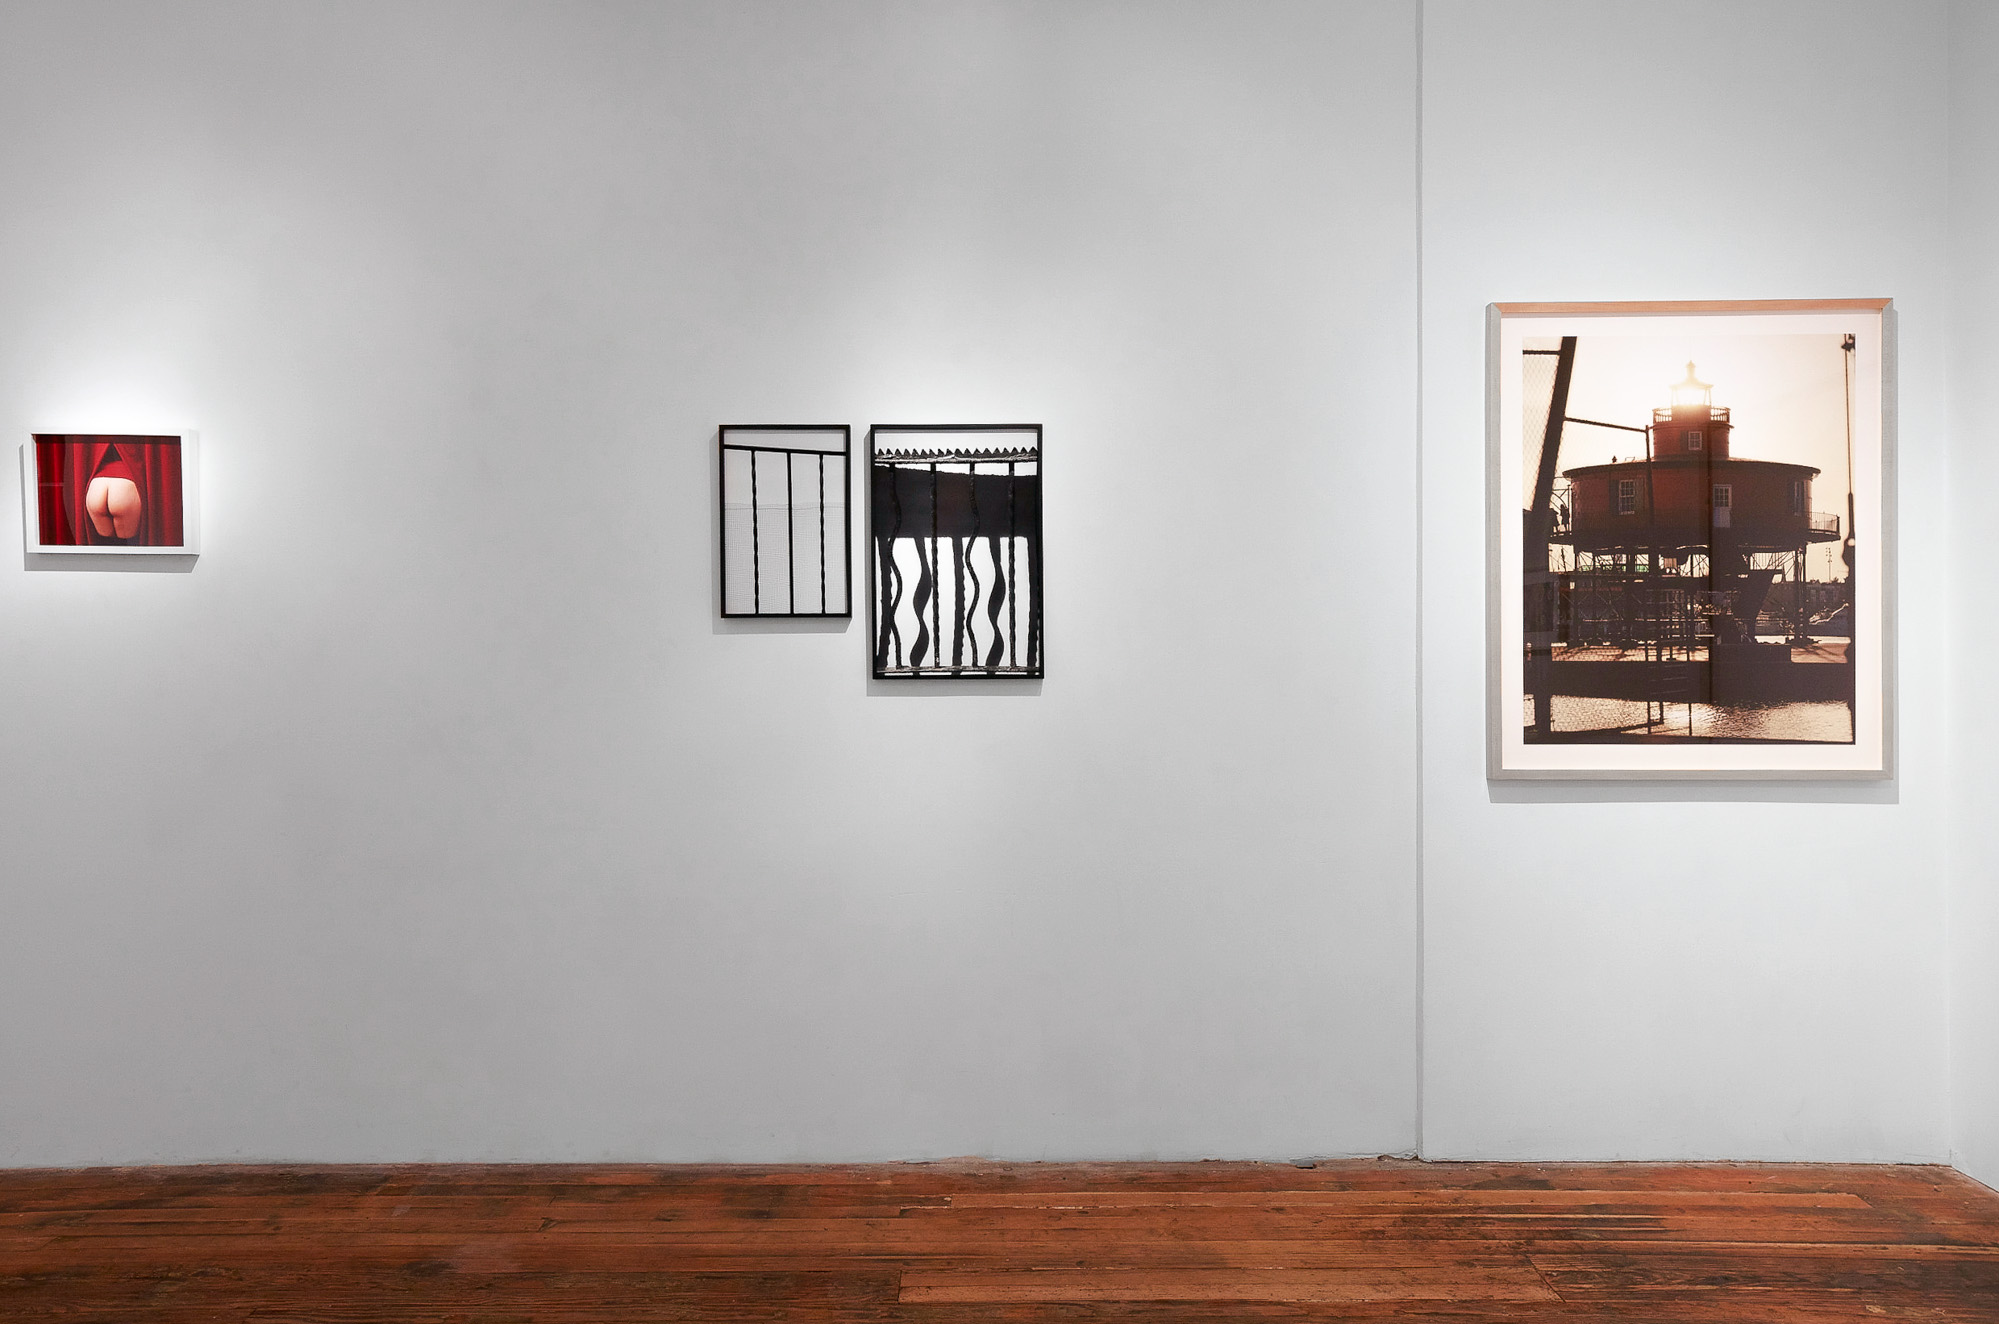 Bedstuy Gates  in  High Summer,  Exhibition view, Foley Gallery, NY, 2016